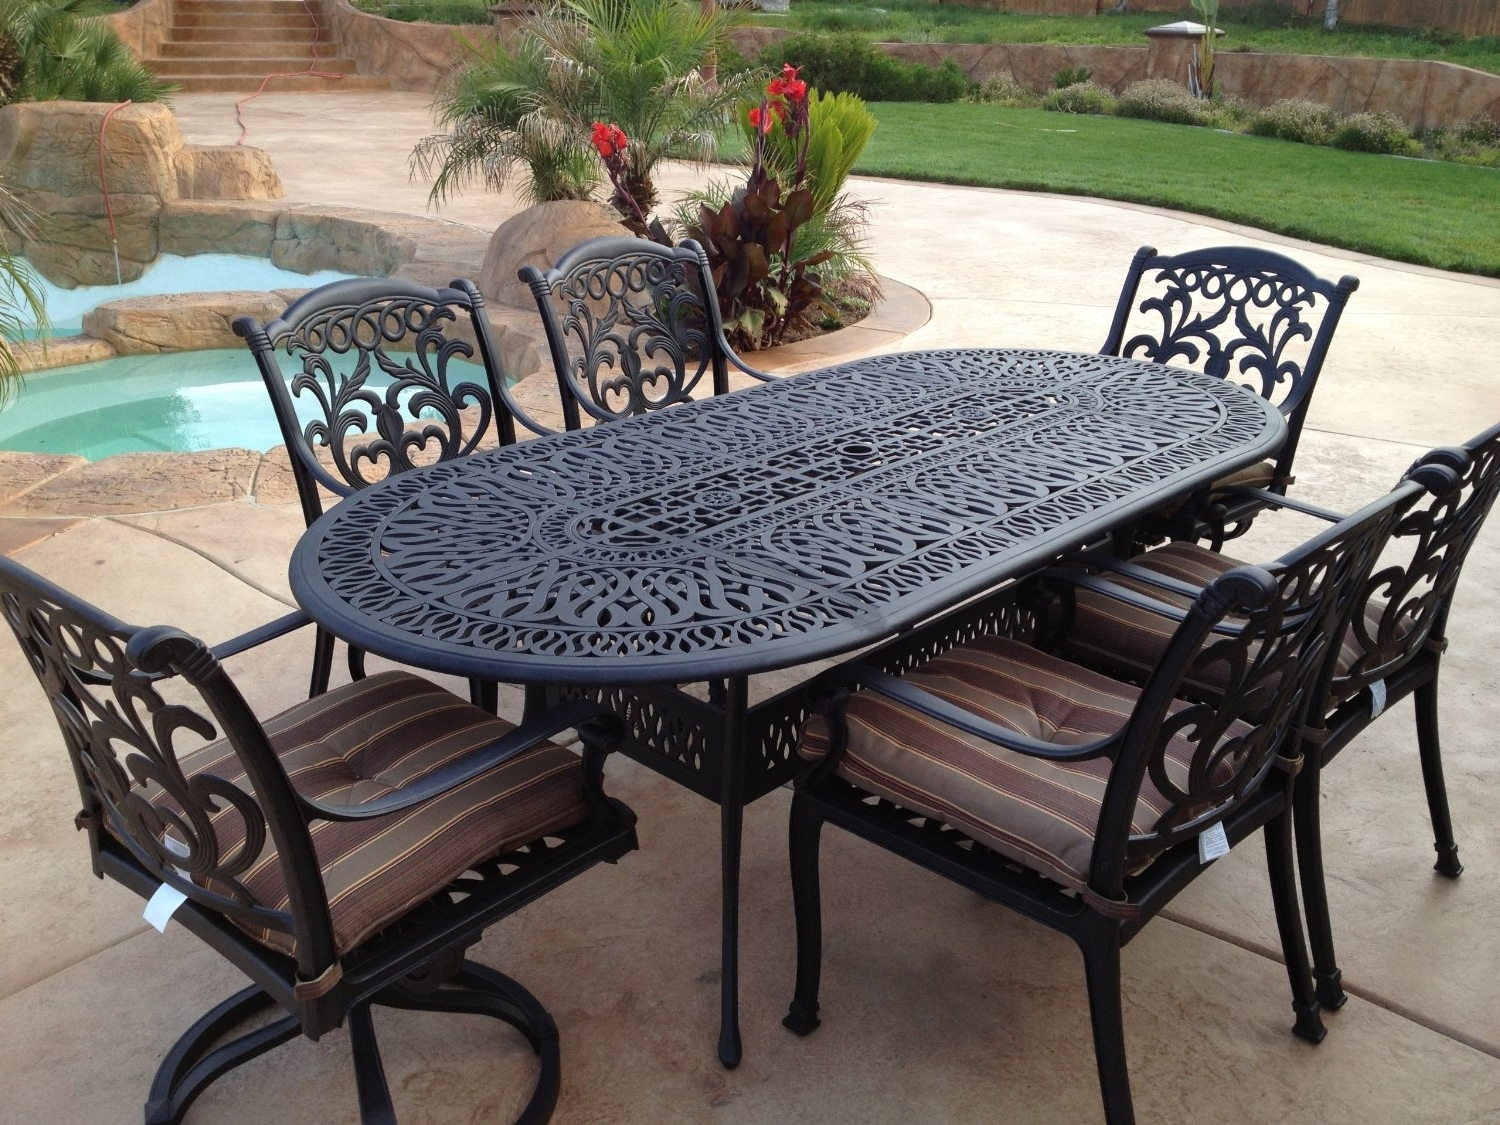 Wrought Iron Patio Conversation Sets Within Well Liked Patio Table: Wrought Iron Patio Set (View 14 of 20)